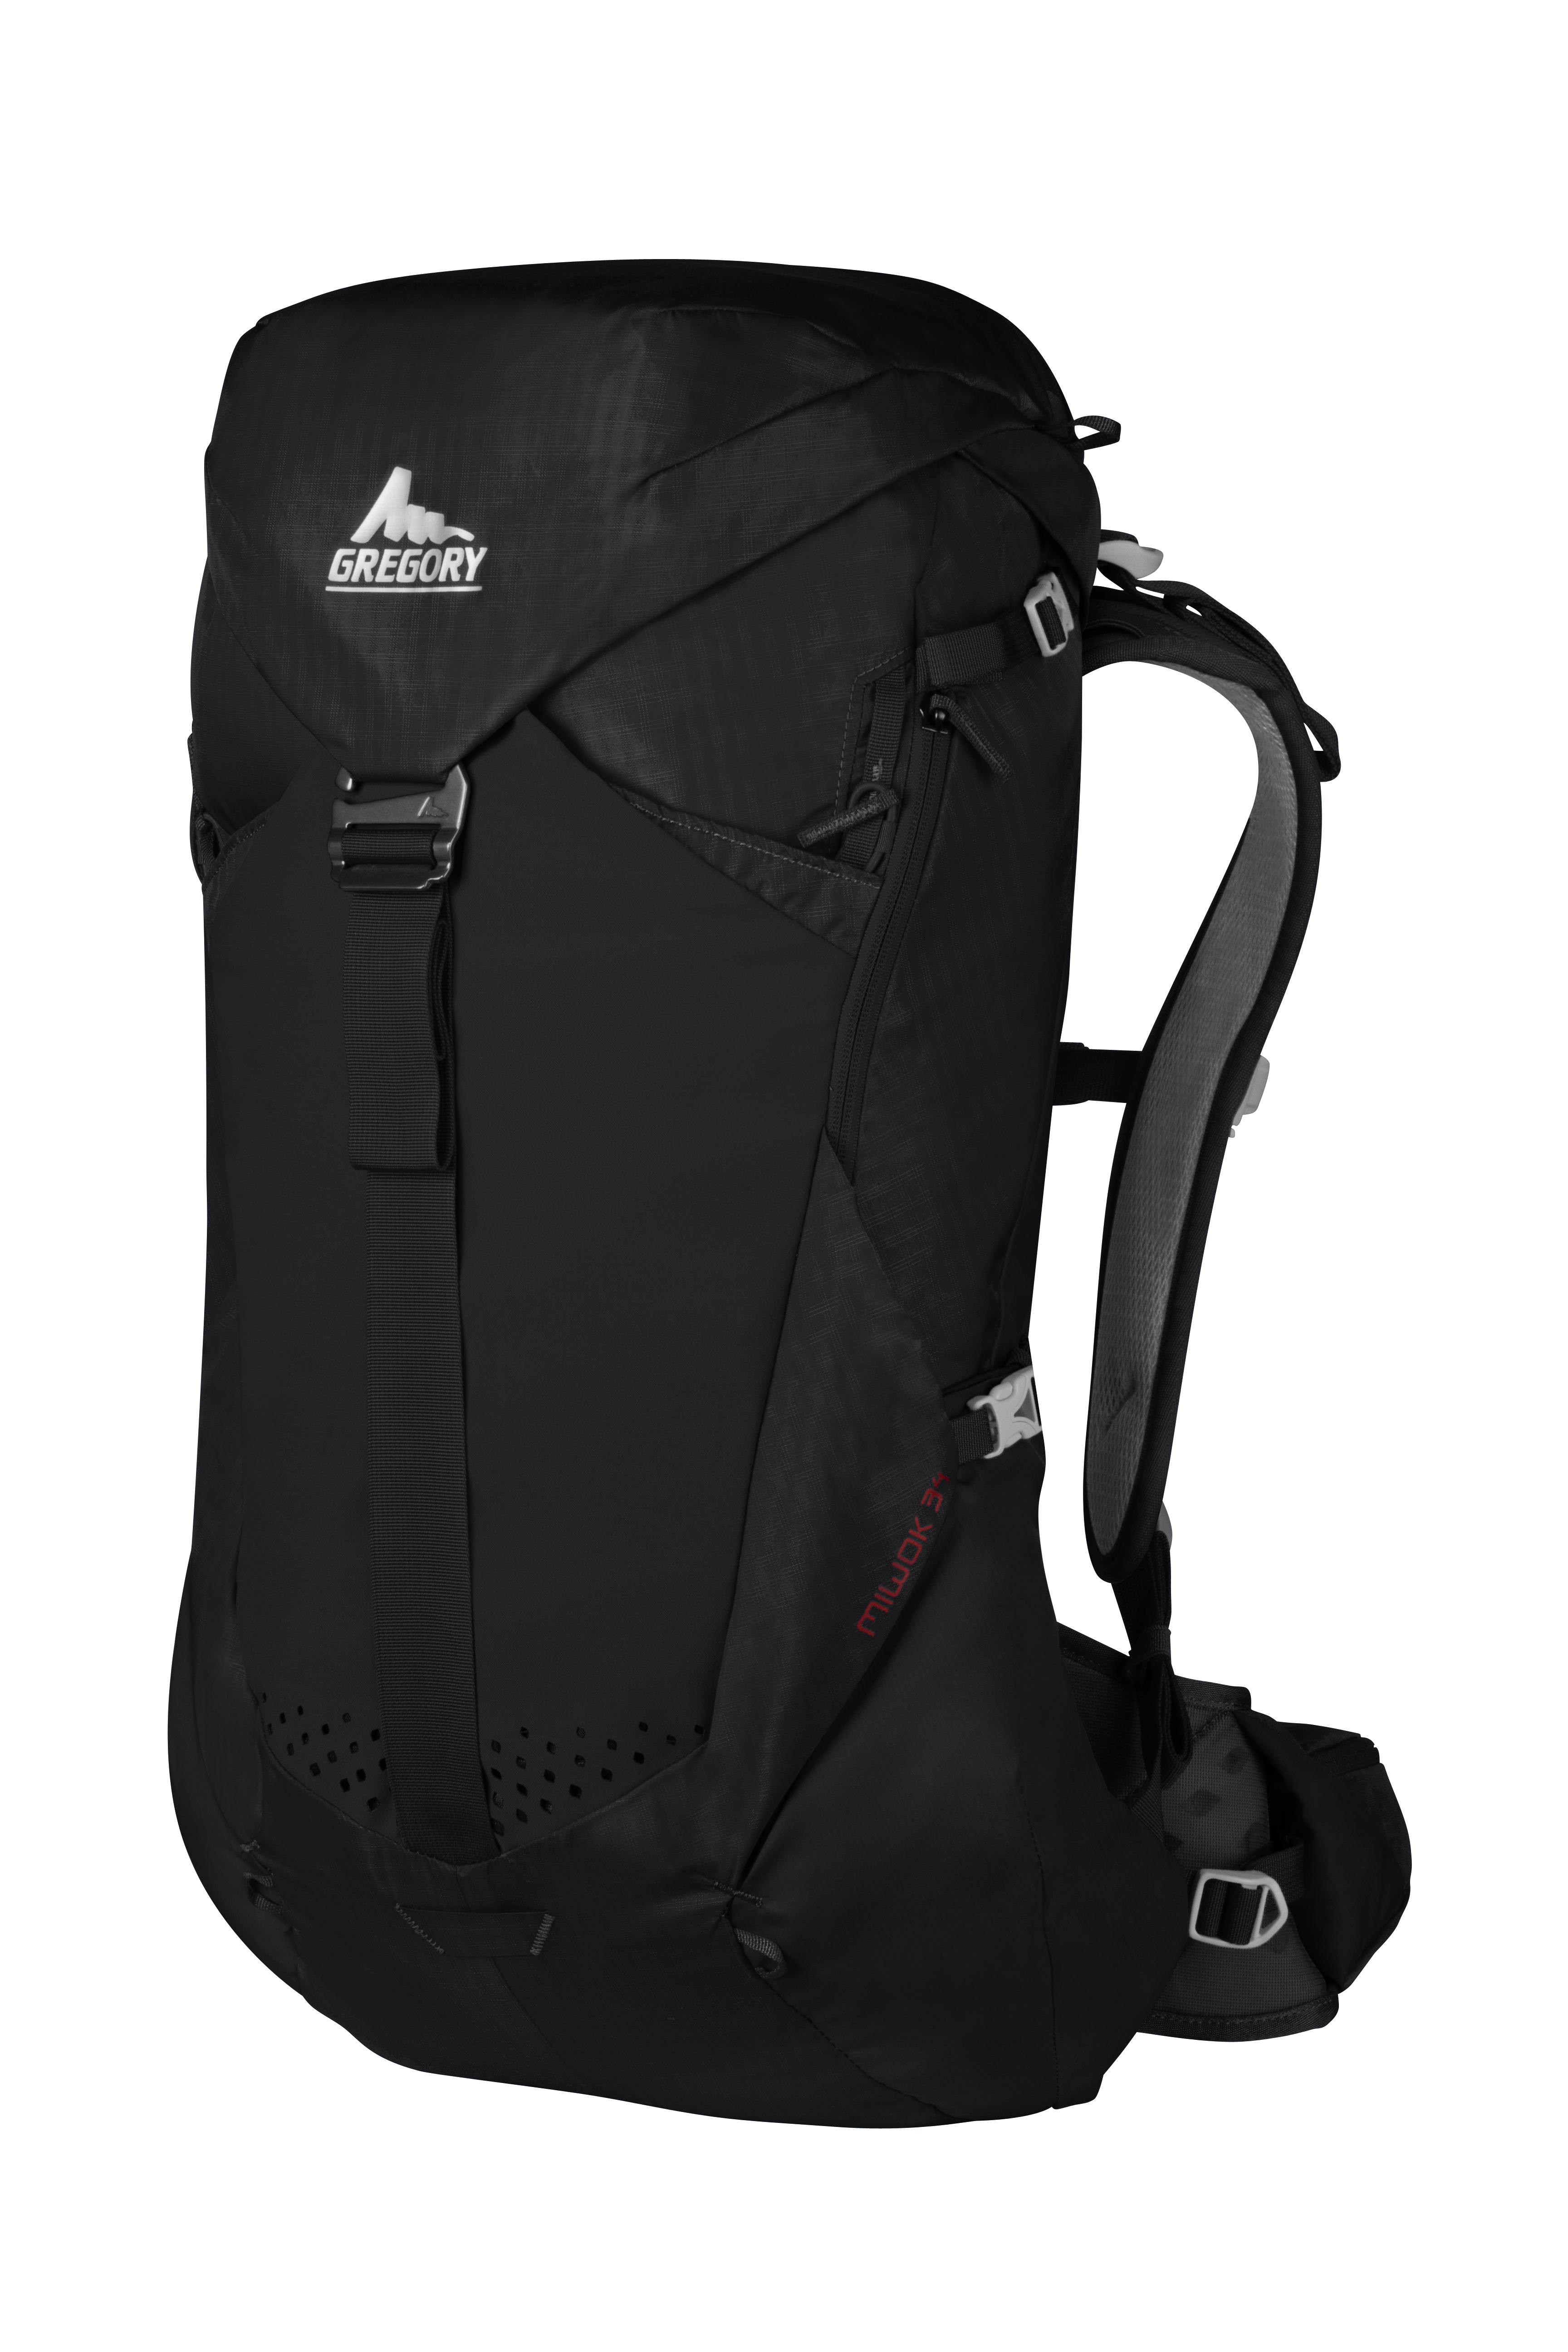 Gregory Miwok 34 Storm Black-30